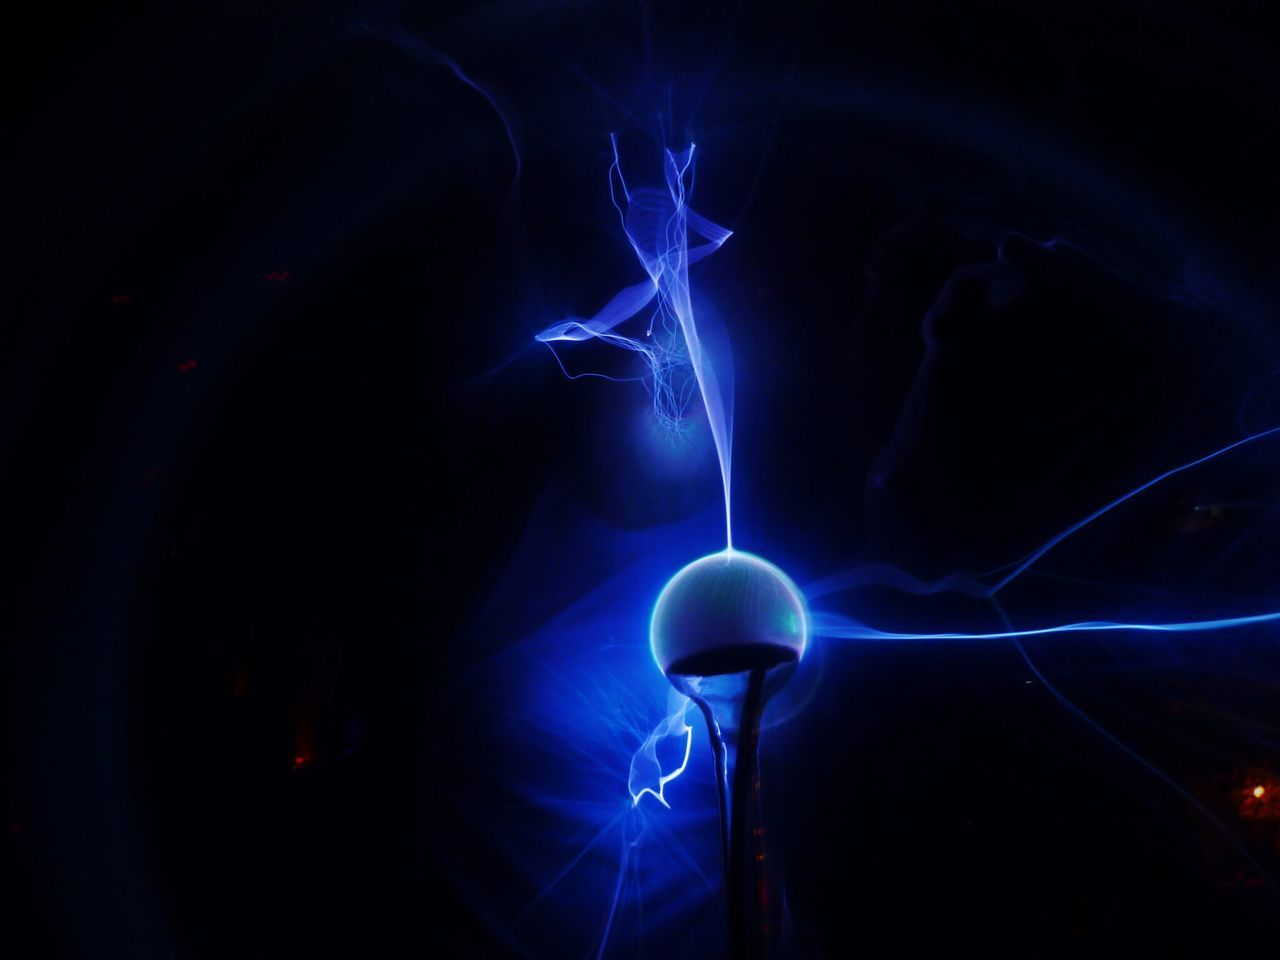 Plasma Globe Plasma Ball Plasma Sphere Nightclub Club Tresor Berlin